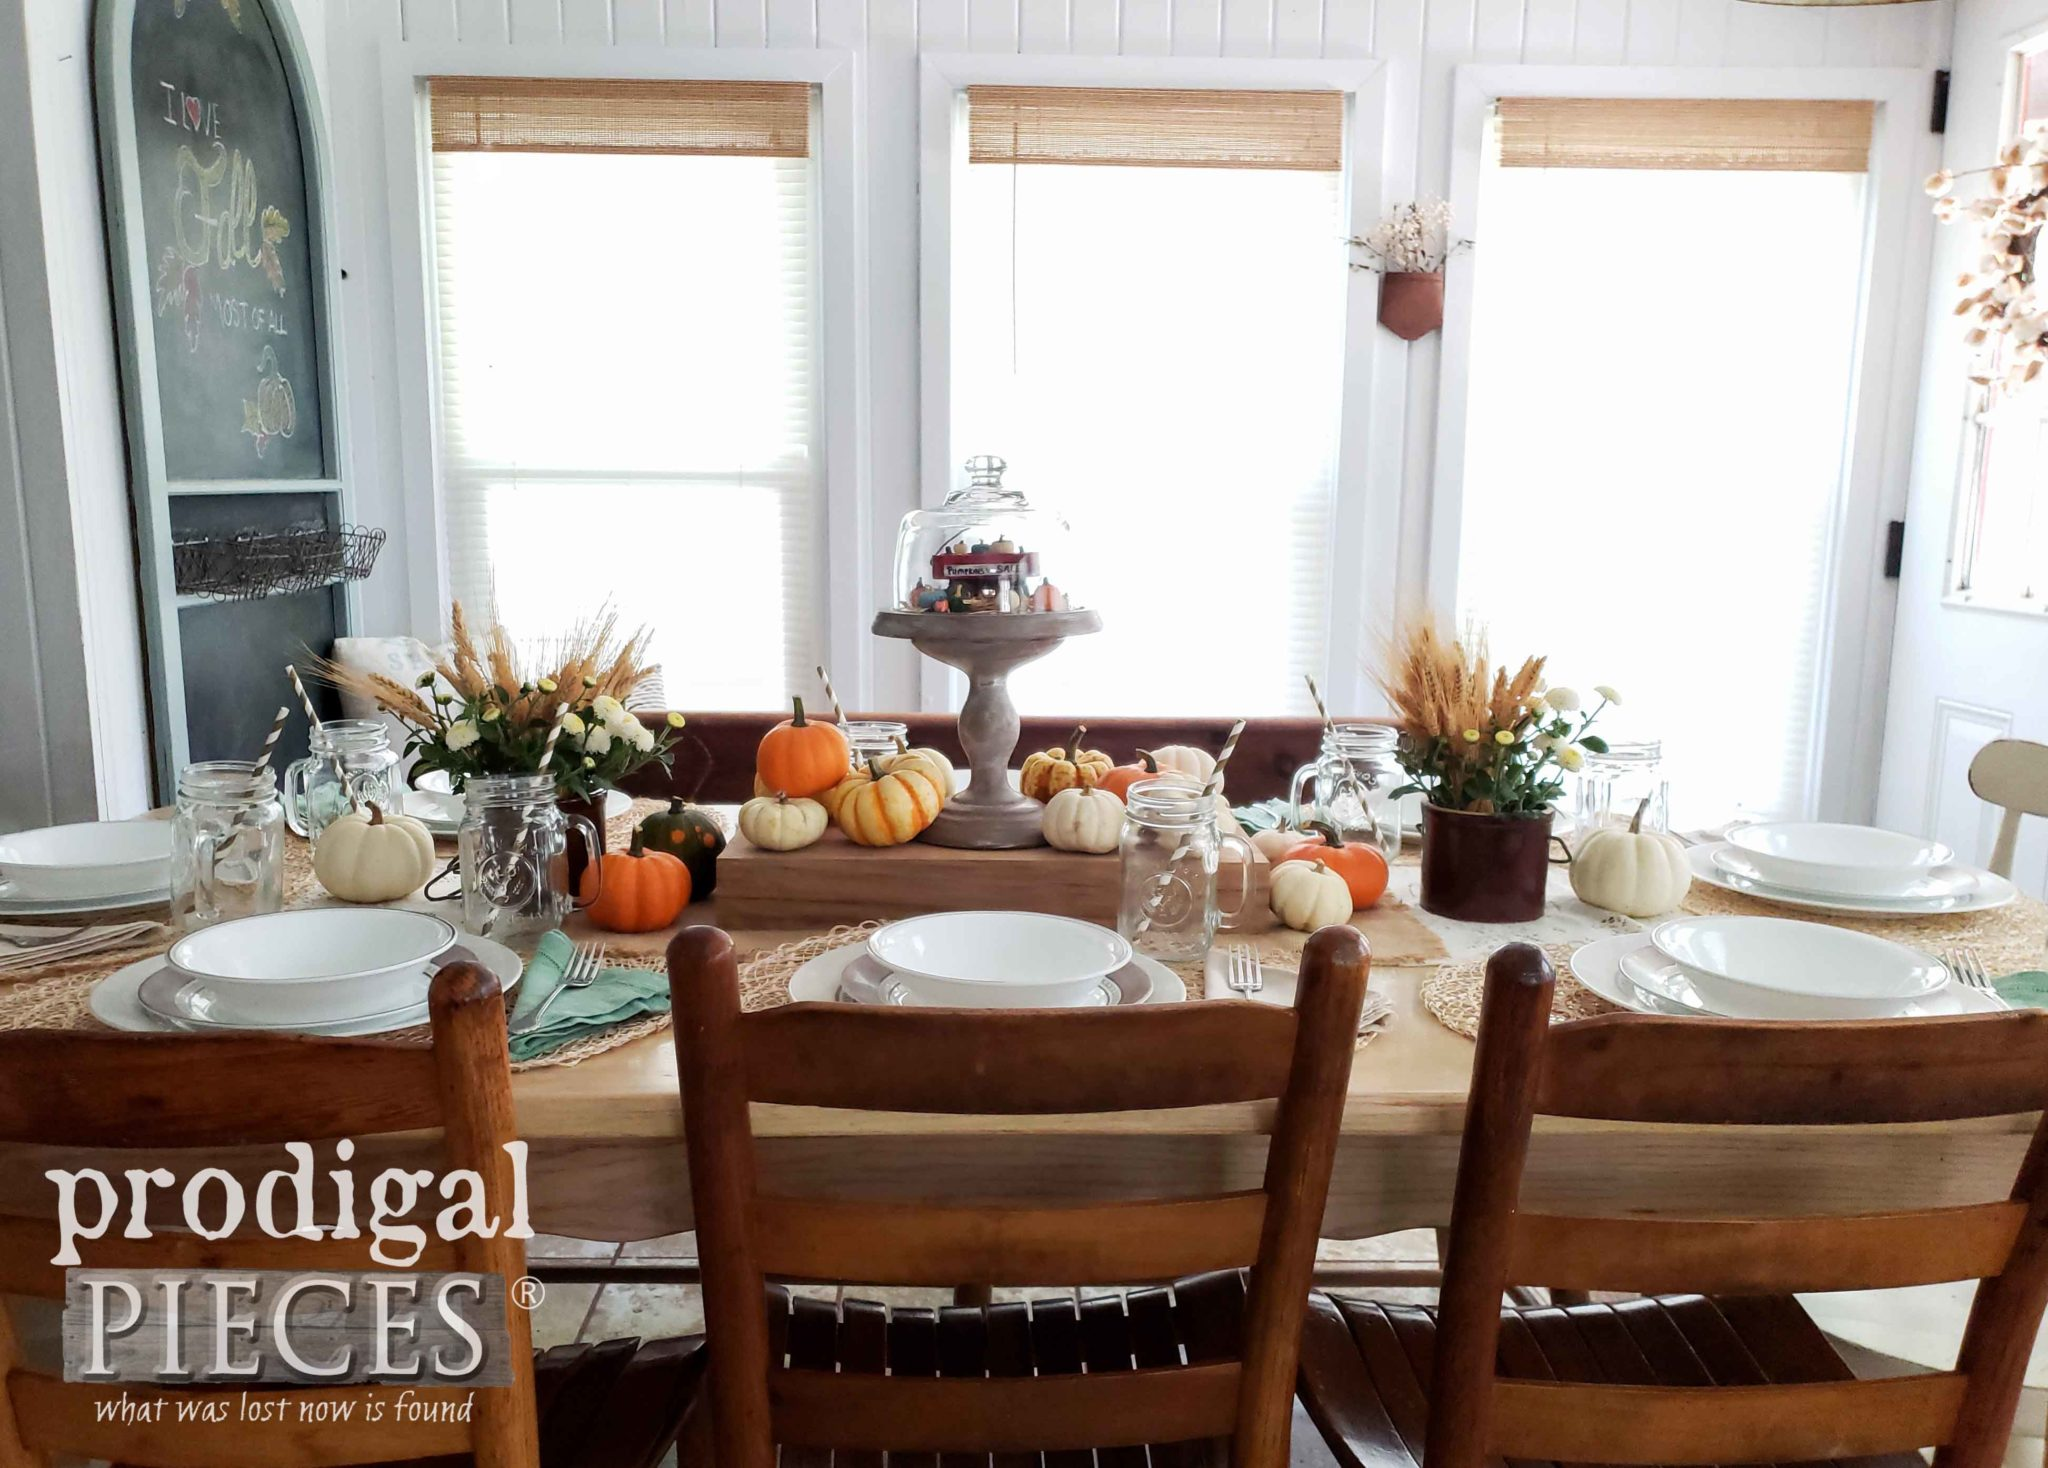 Farmhouse Fall Tablescape Using Thrifted Finds Made New, Reclaimed Wood, and Natural Elements by Larissa of Prodigal Pieces | prodigalpieces.com #prodigalpieces #home #homedecor #diy #fall #handmade